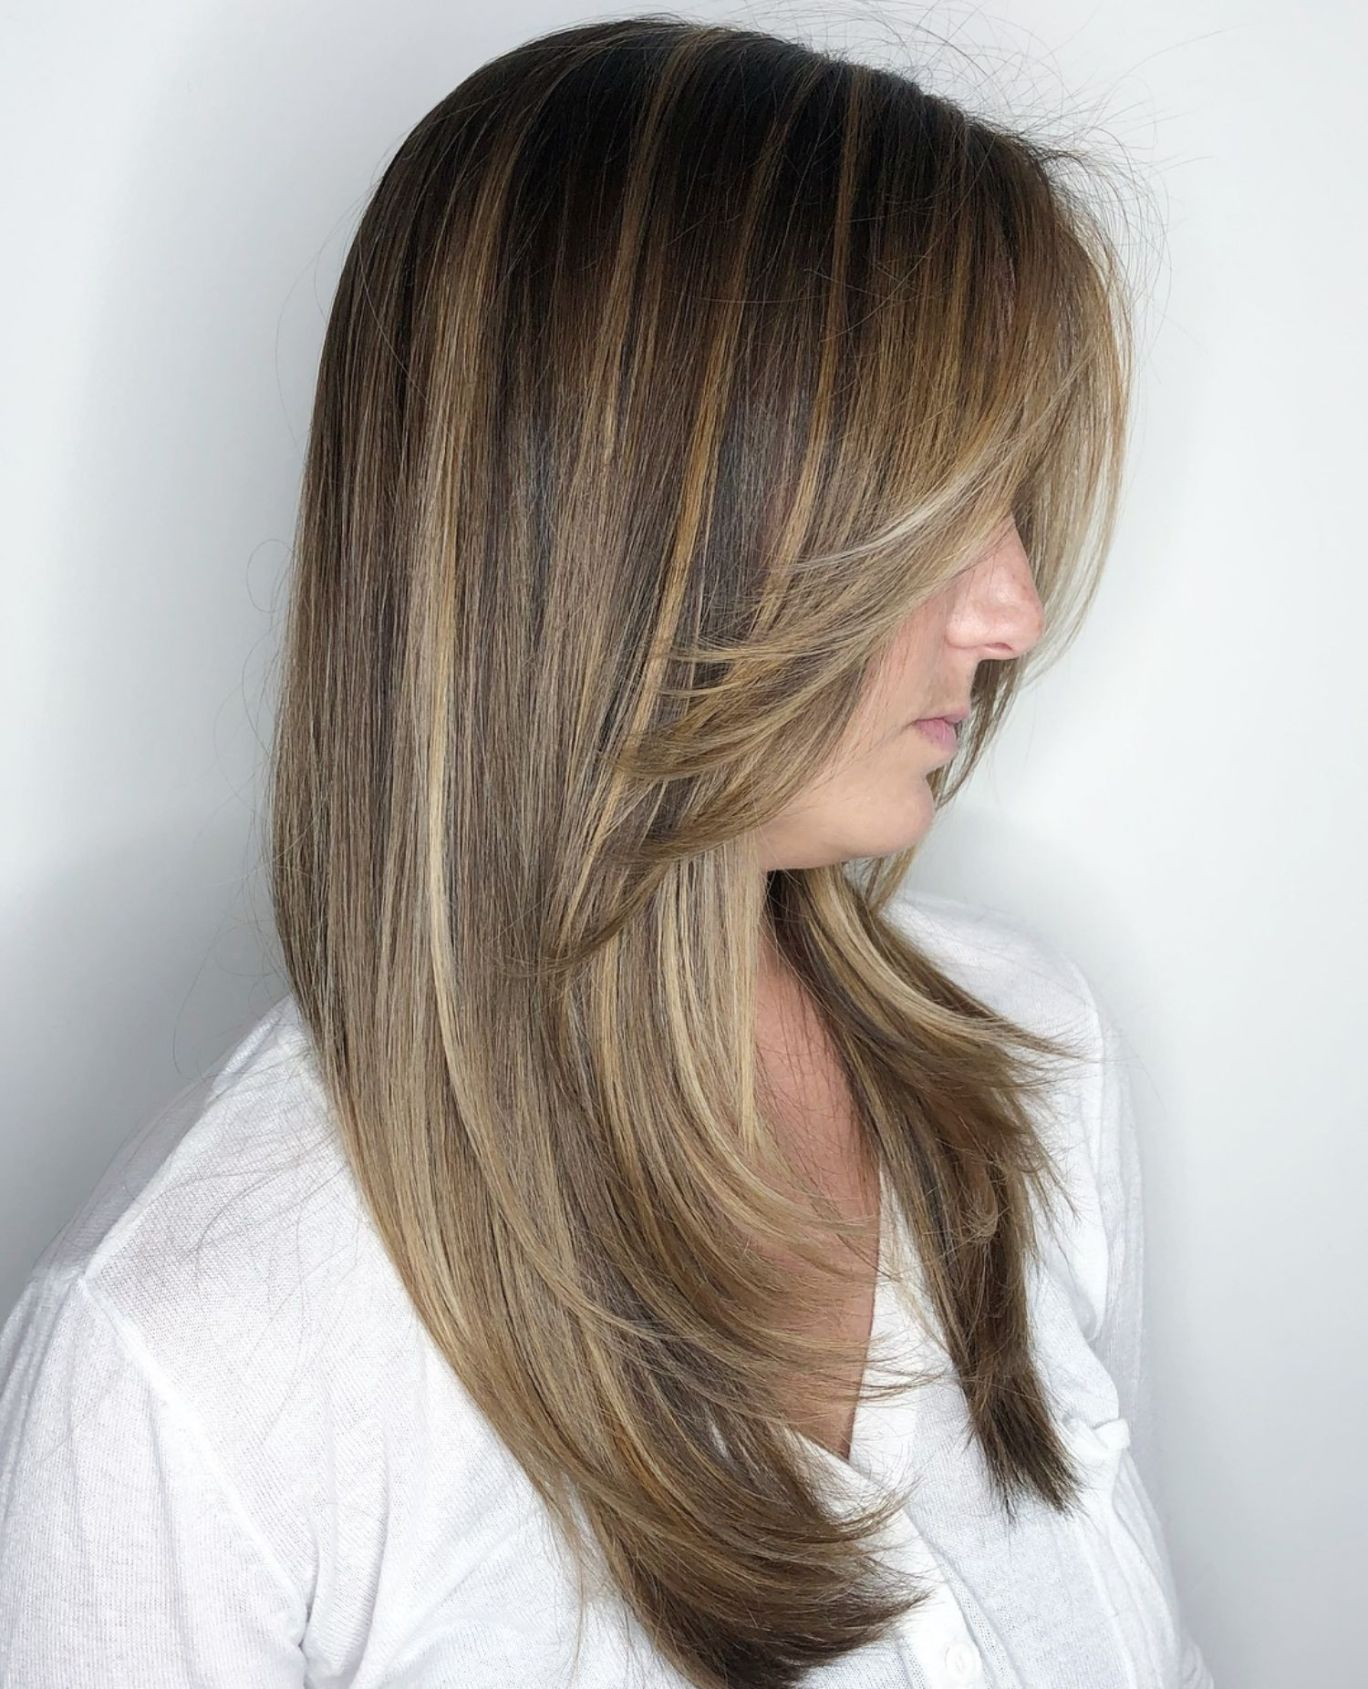 40 Picture Perfect Hairstyles For Long Thin Hair Long Thin Hair Hairstyles For Thin Hair Front Hair Styles